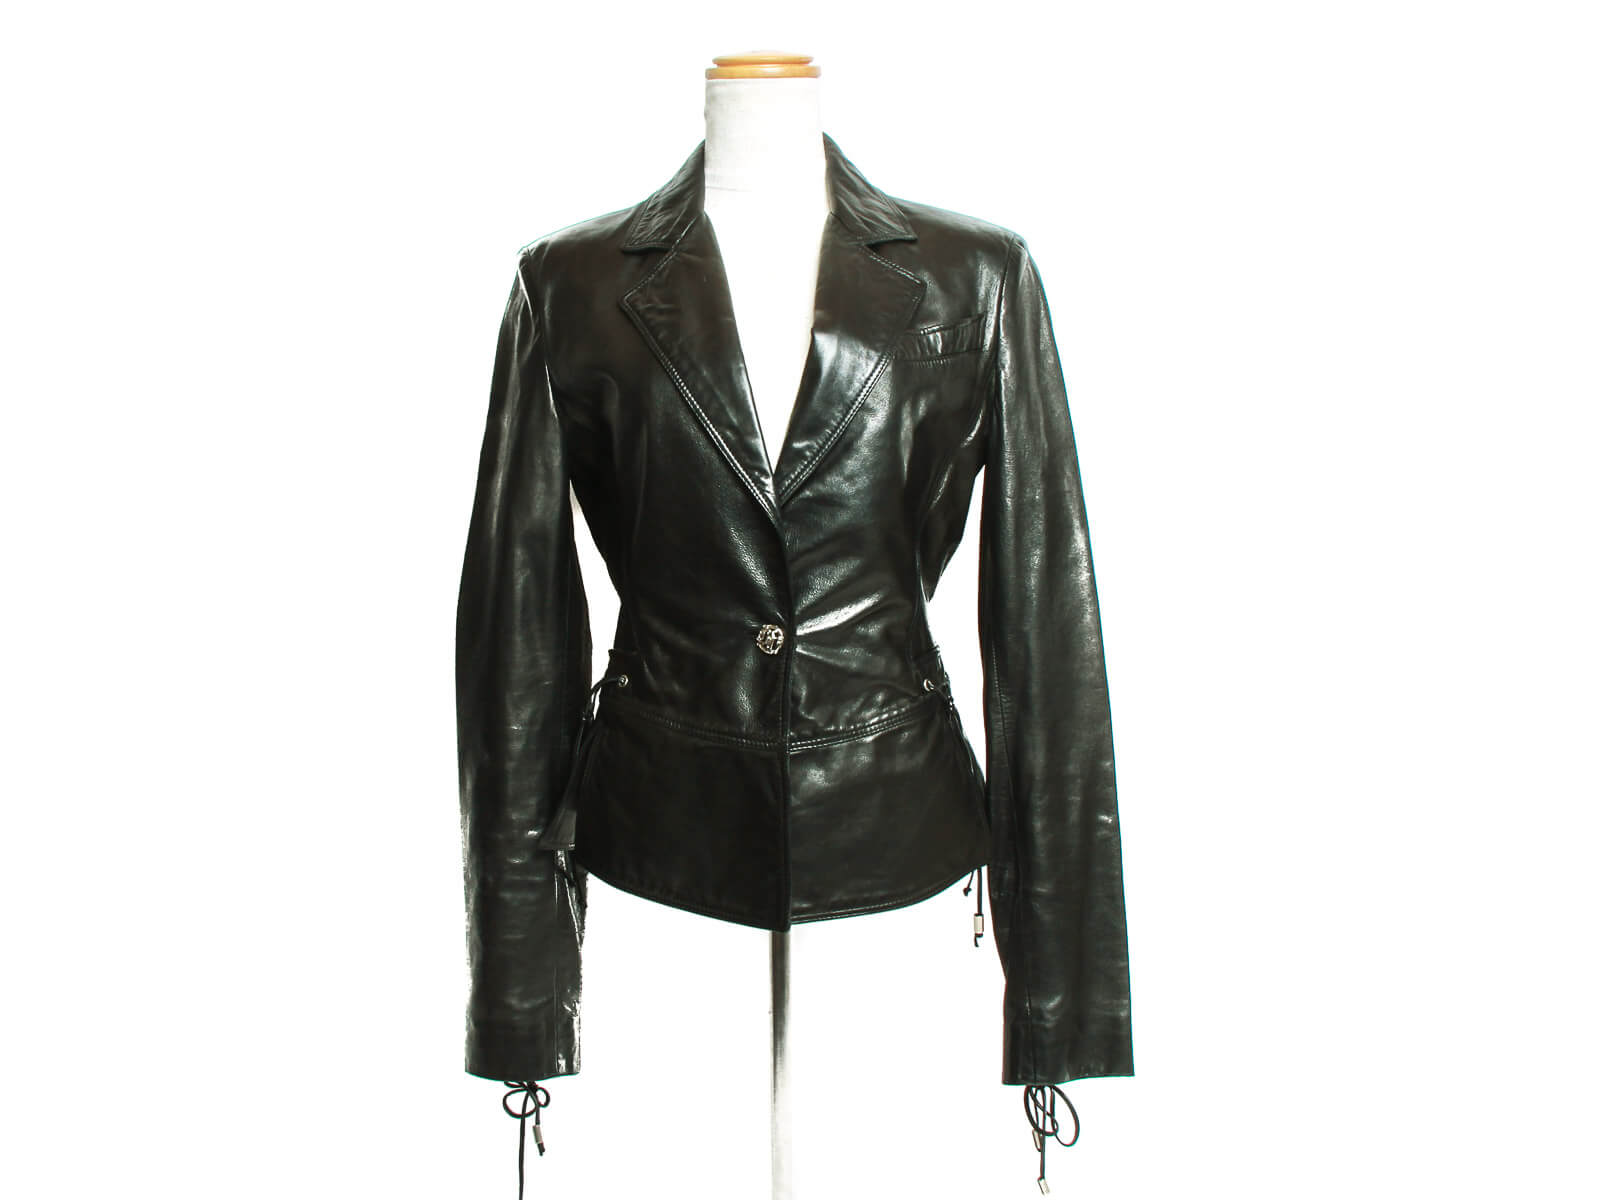 Authentic Versace Black leather Jacket/Blazer